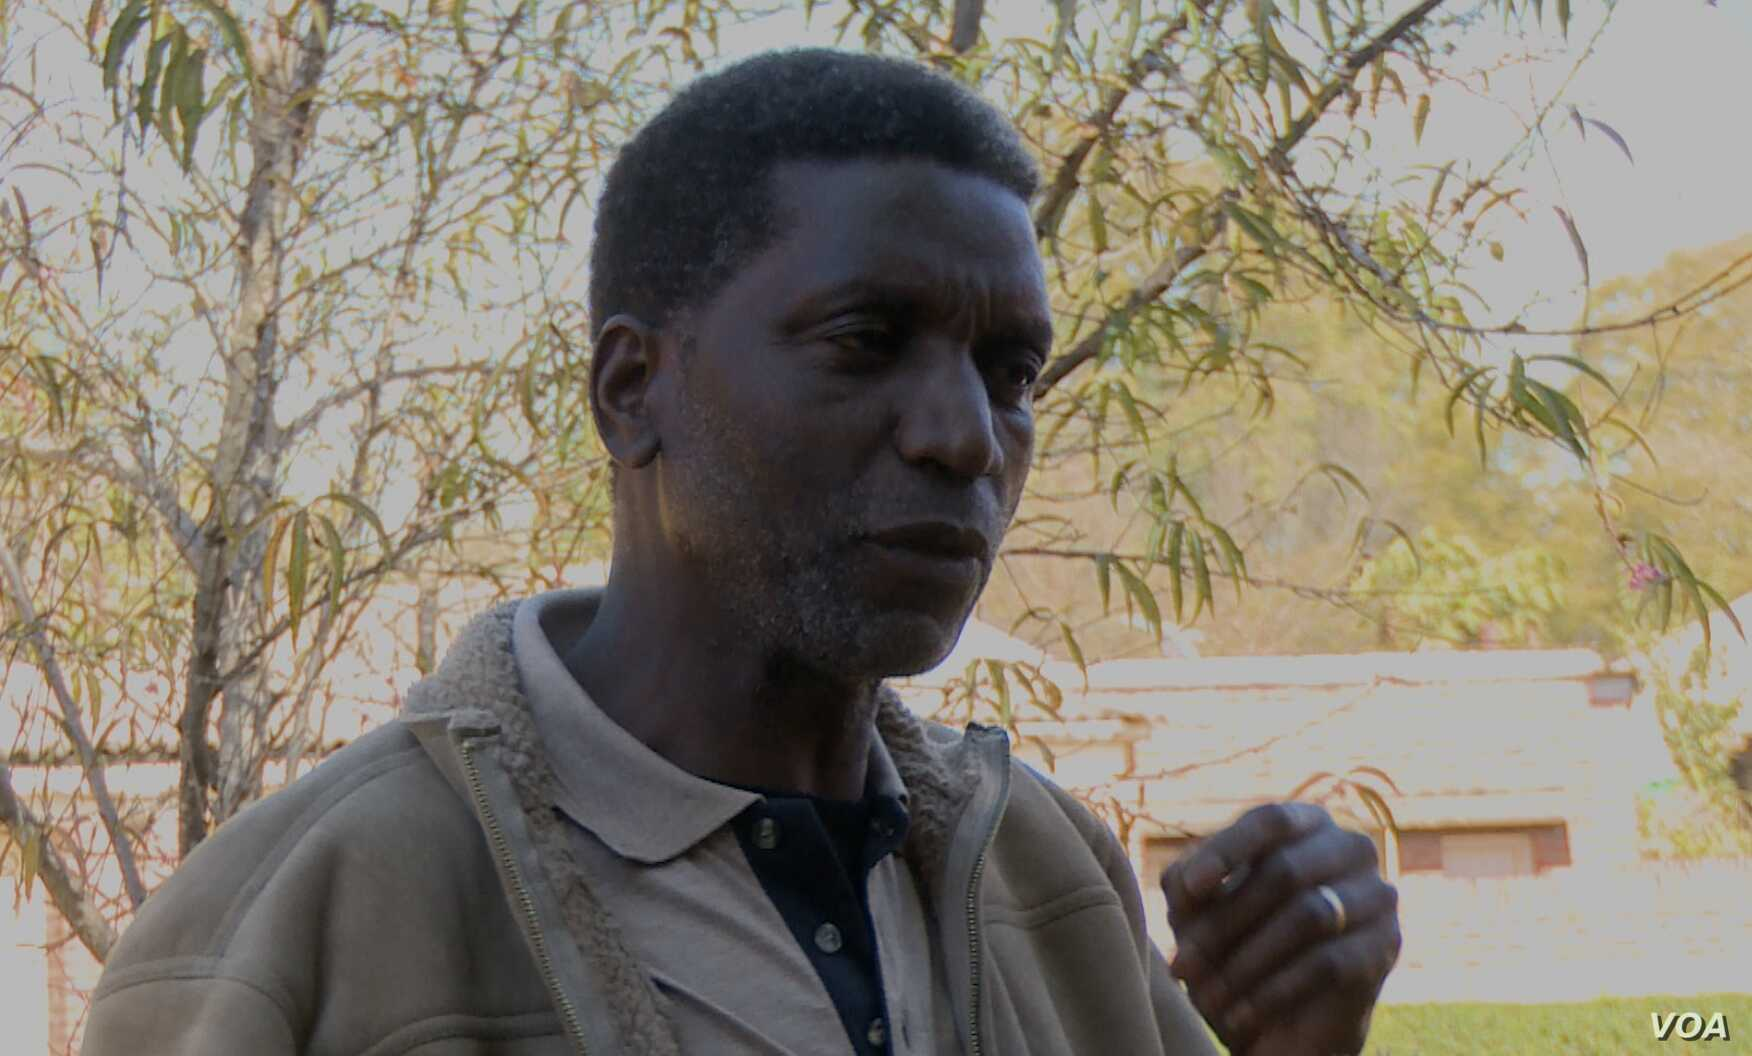 Political analyst Rejoice Ngwenya speaking to VOA in Harare, Zimbabwe, July 11, 2018.